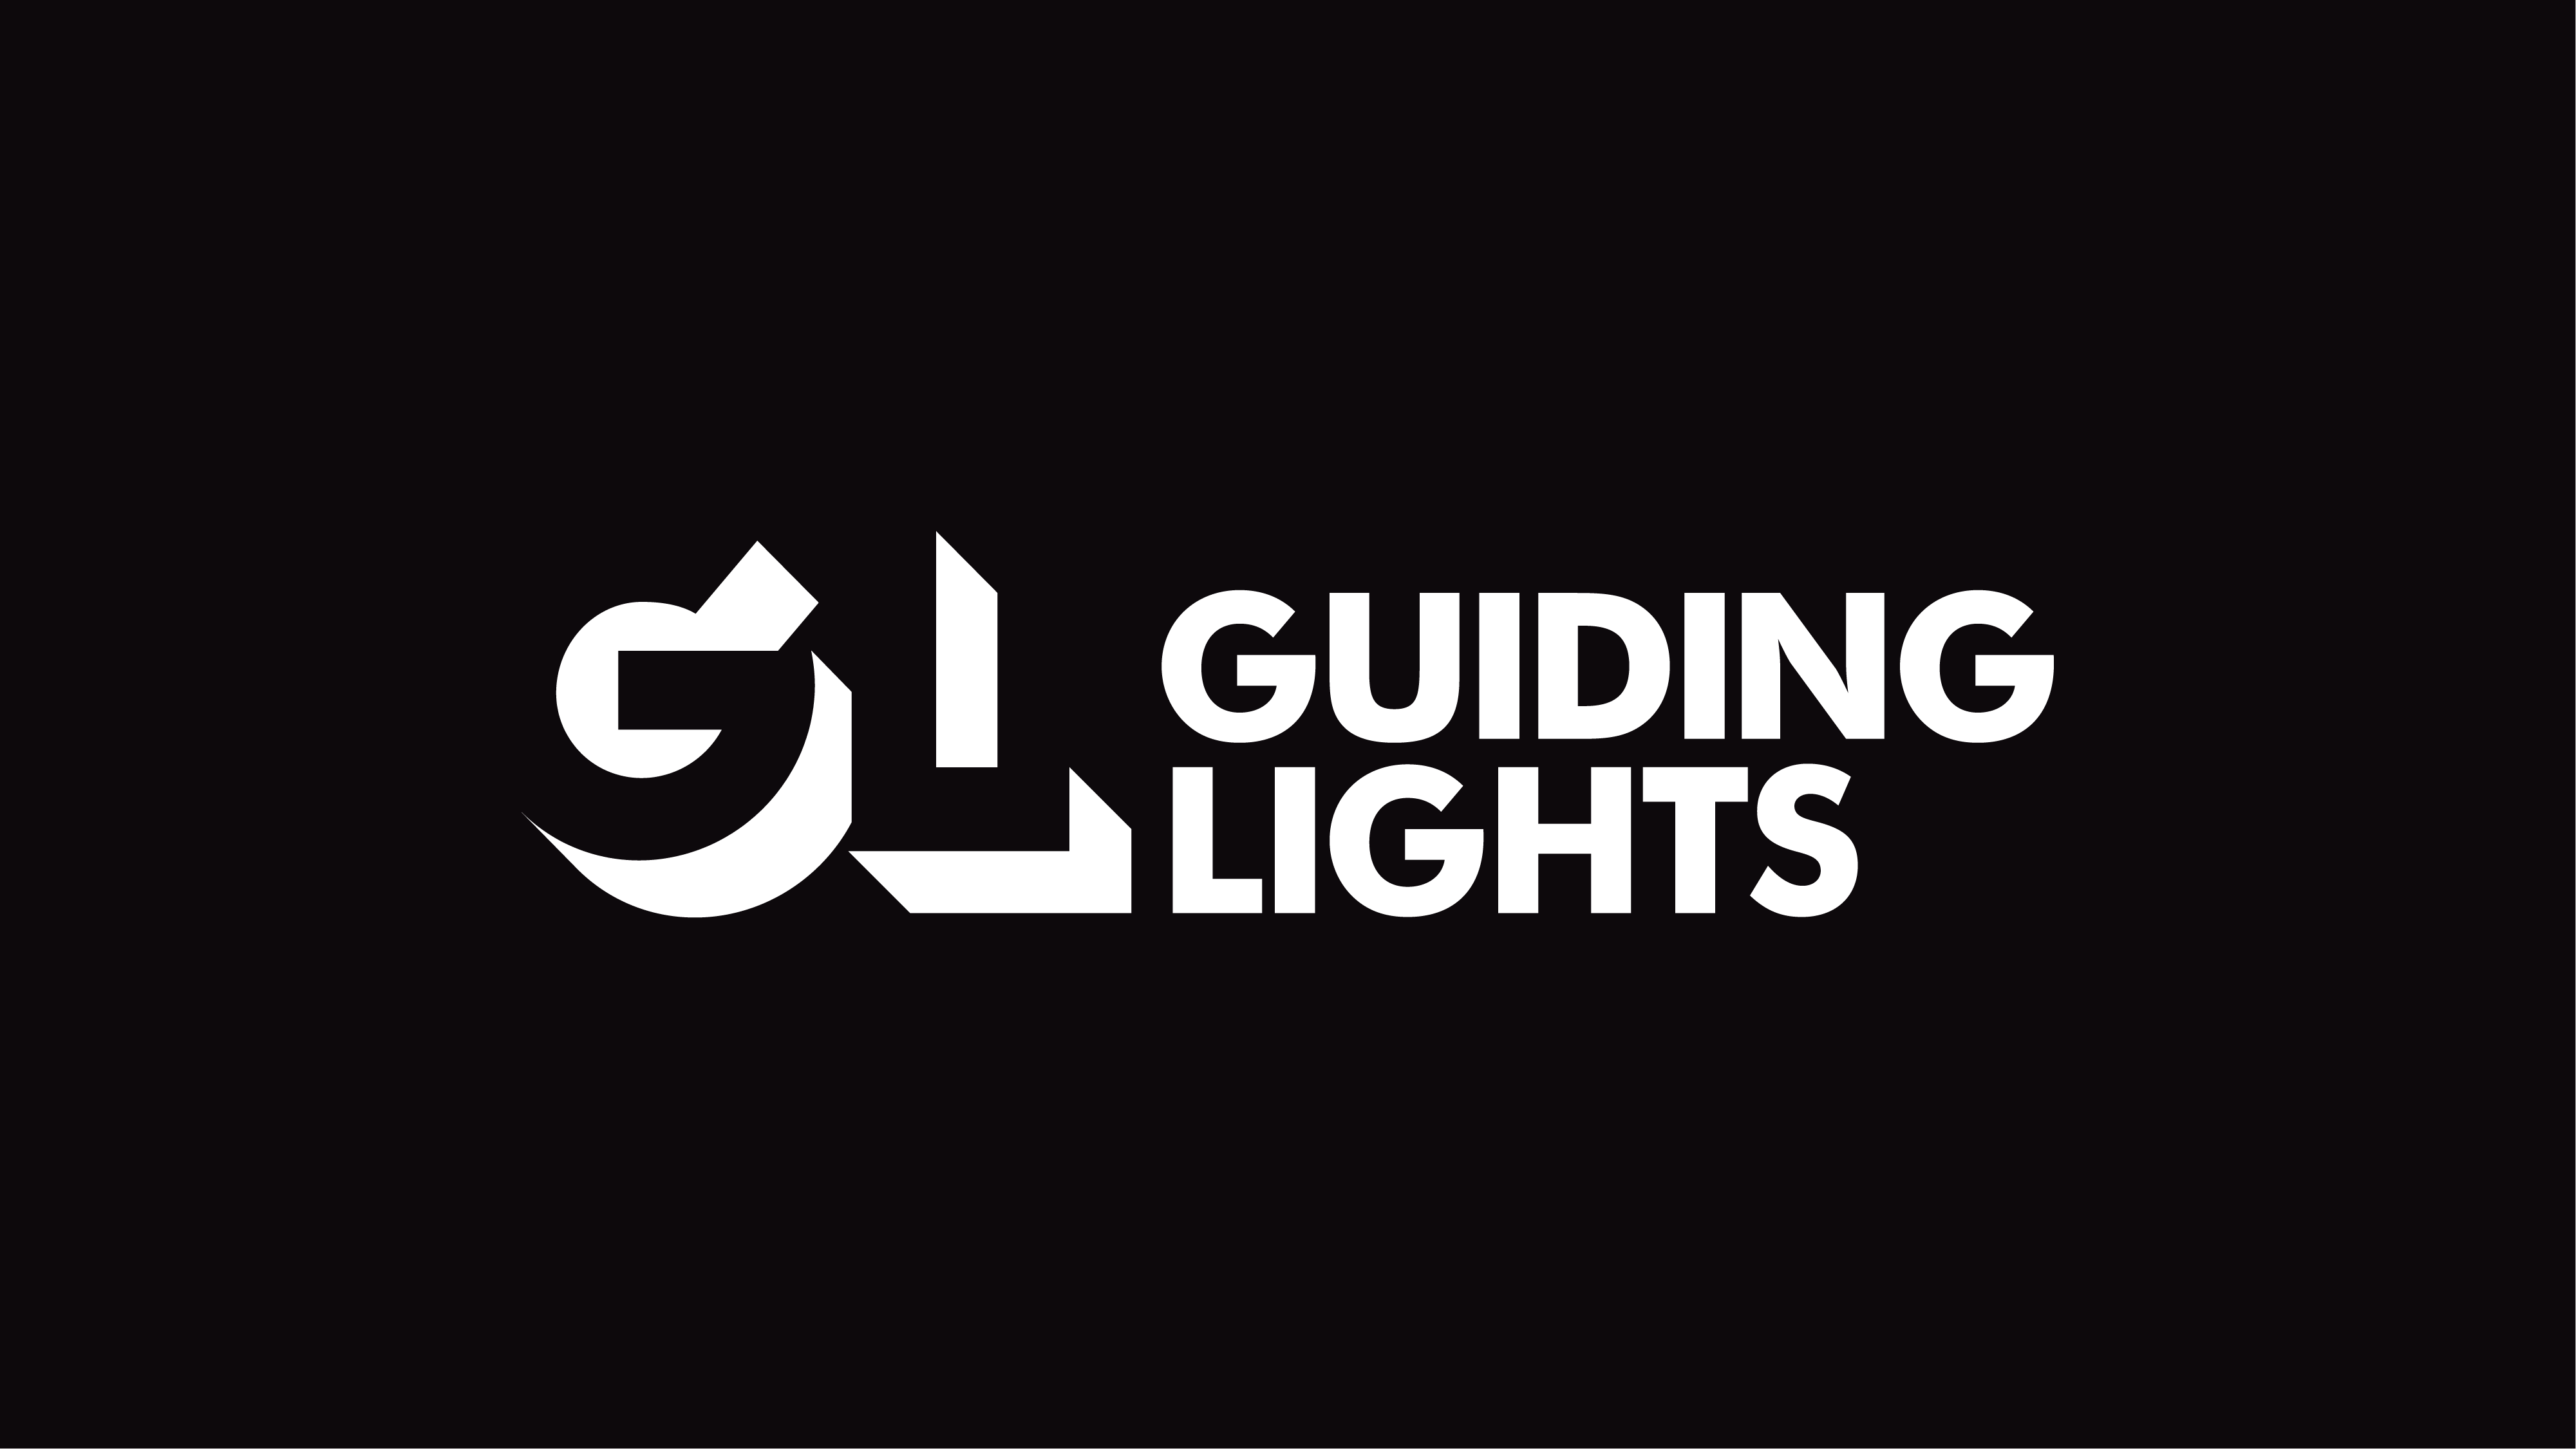 Guiding-Lights-full-logo-suite-core